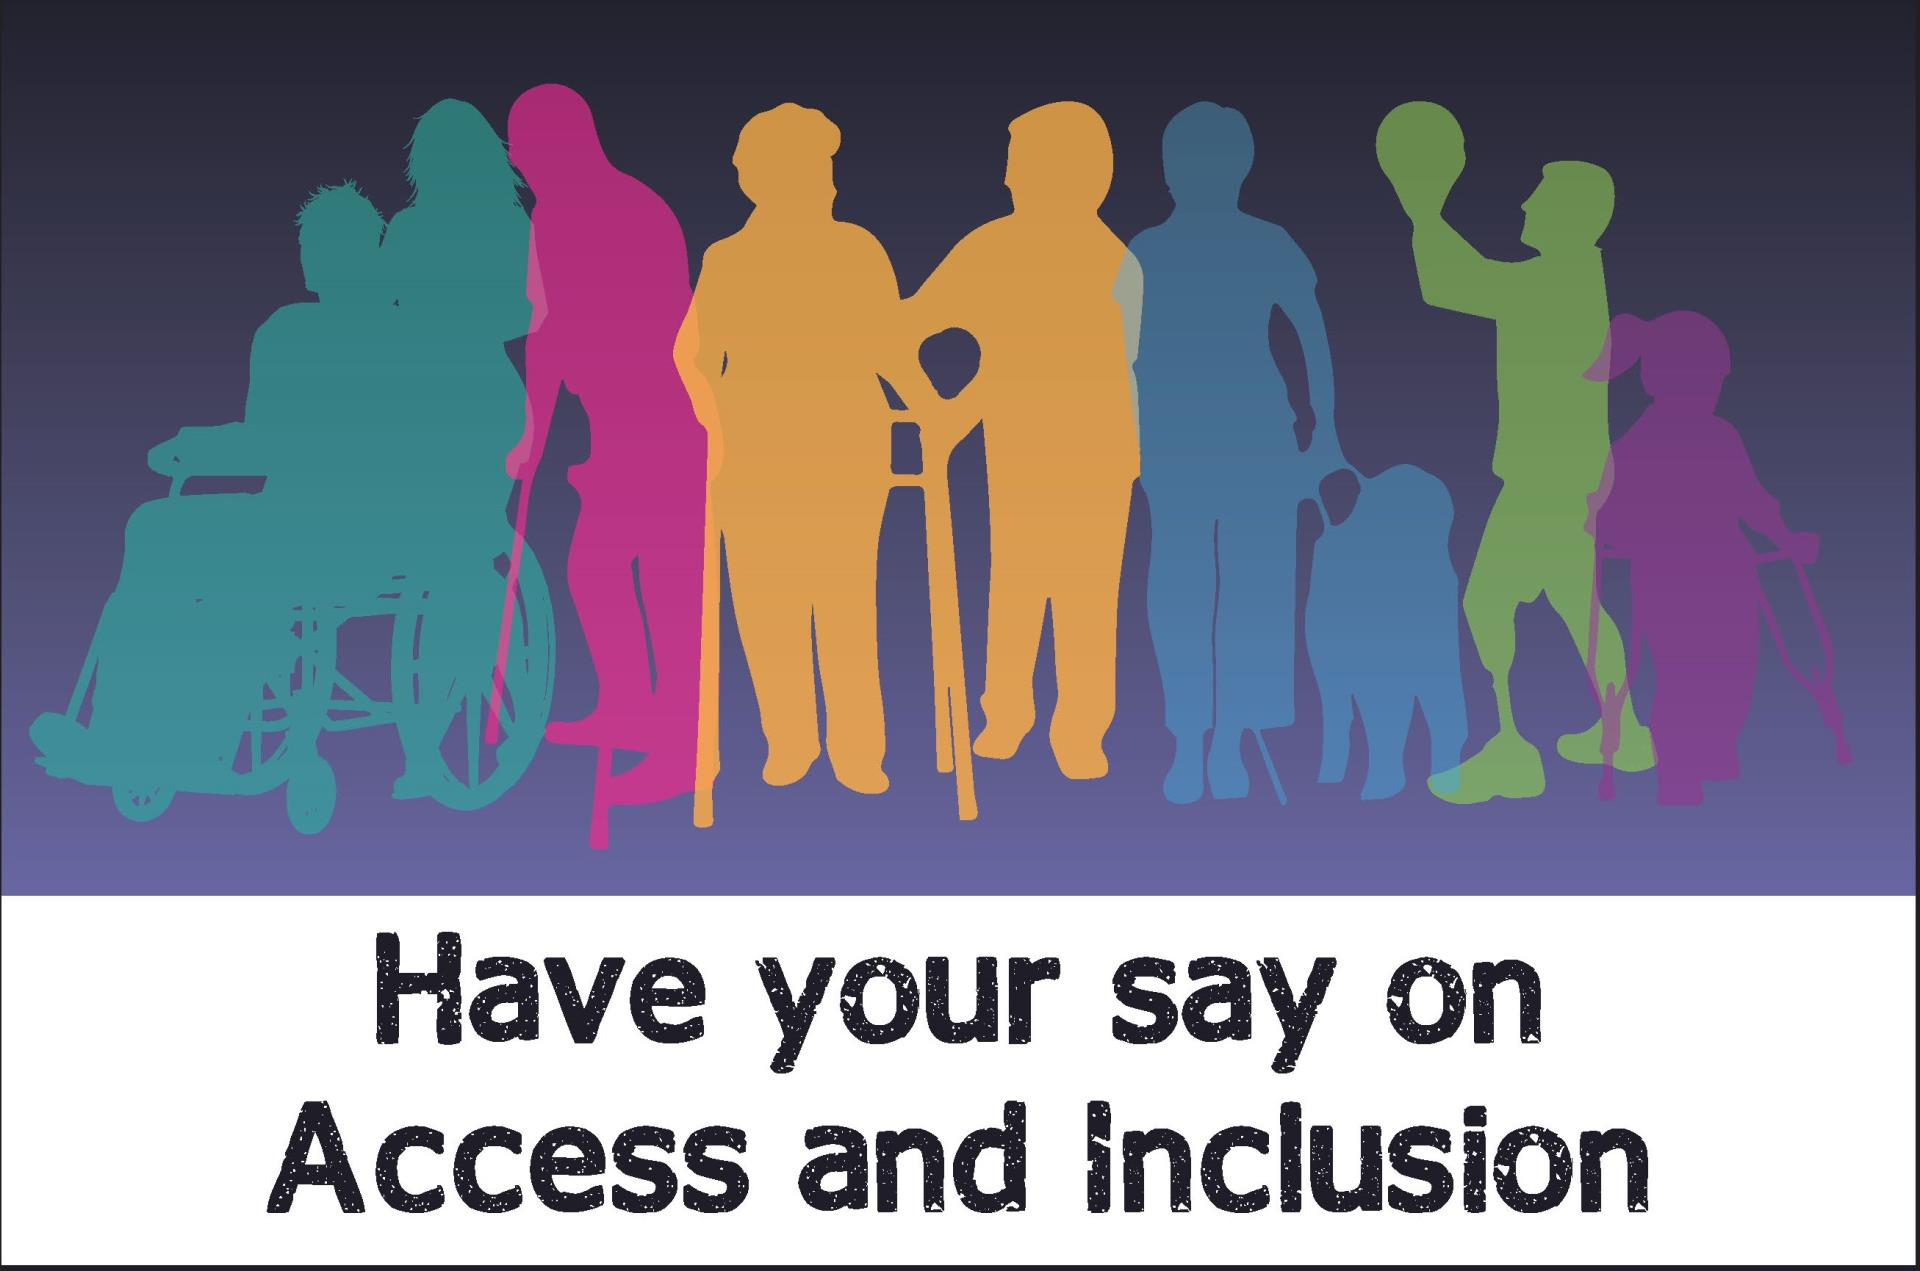 Have your say on access and inclusion